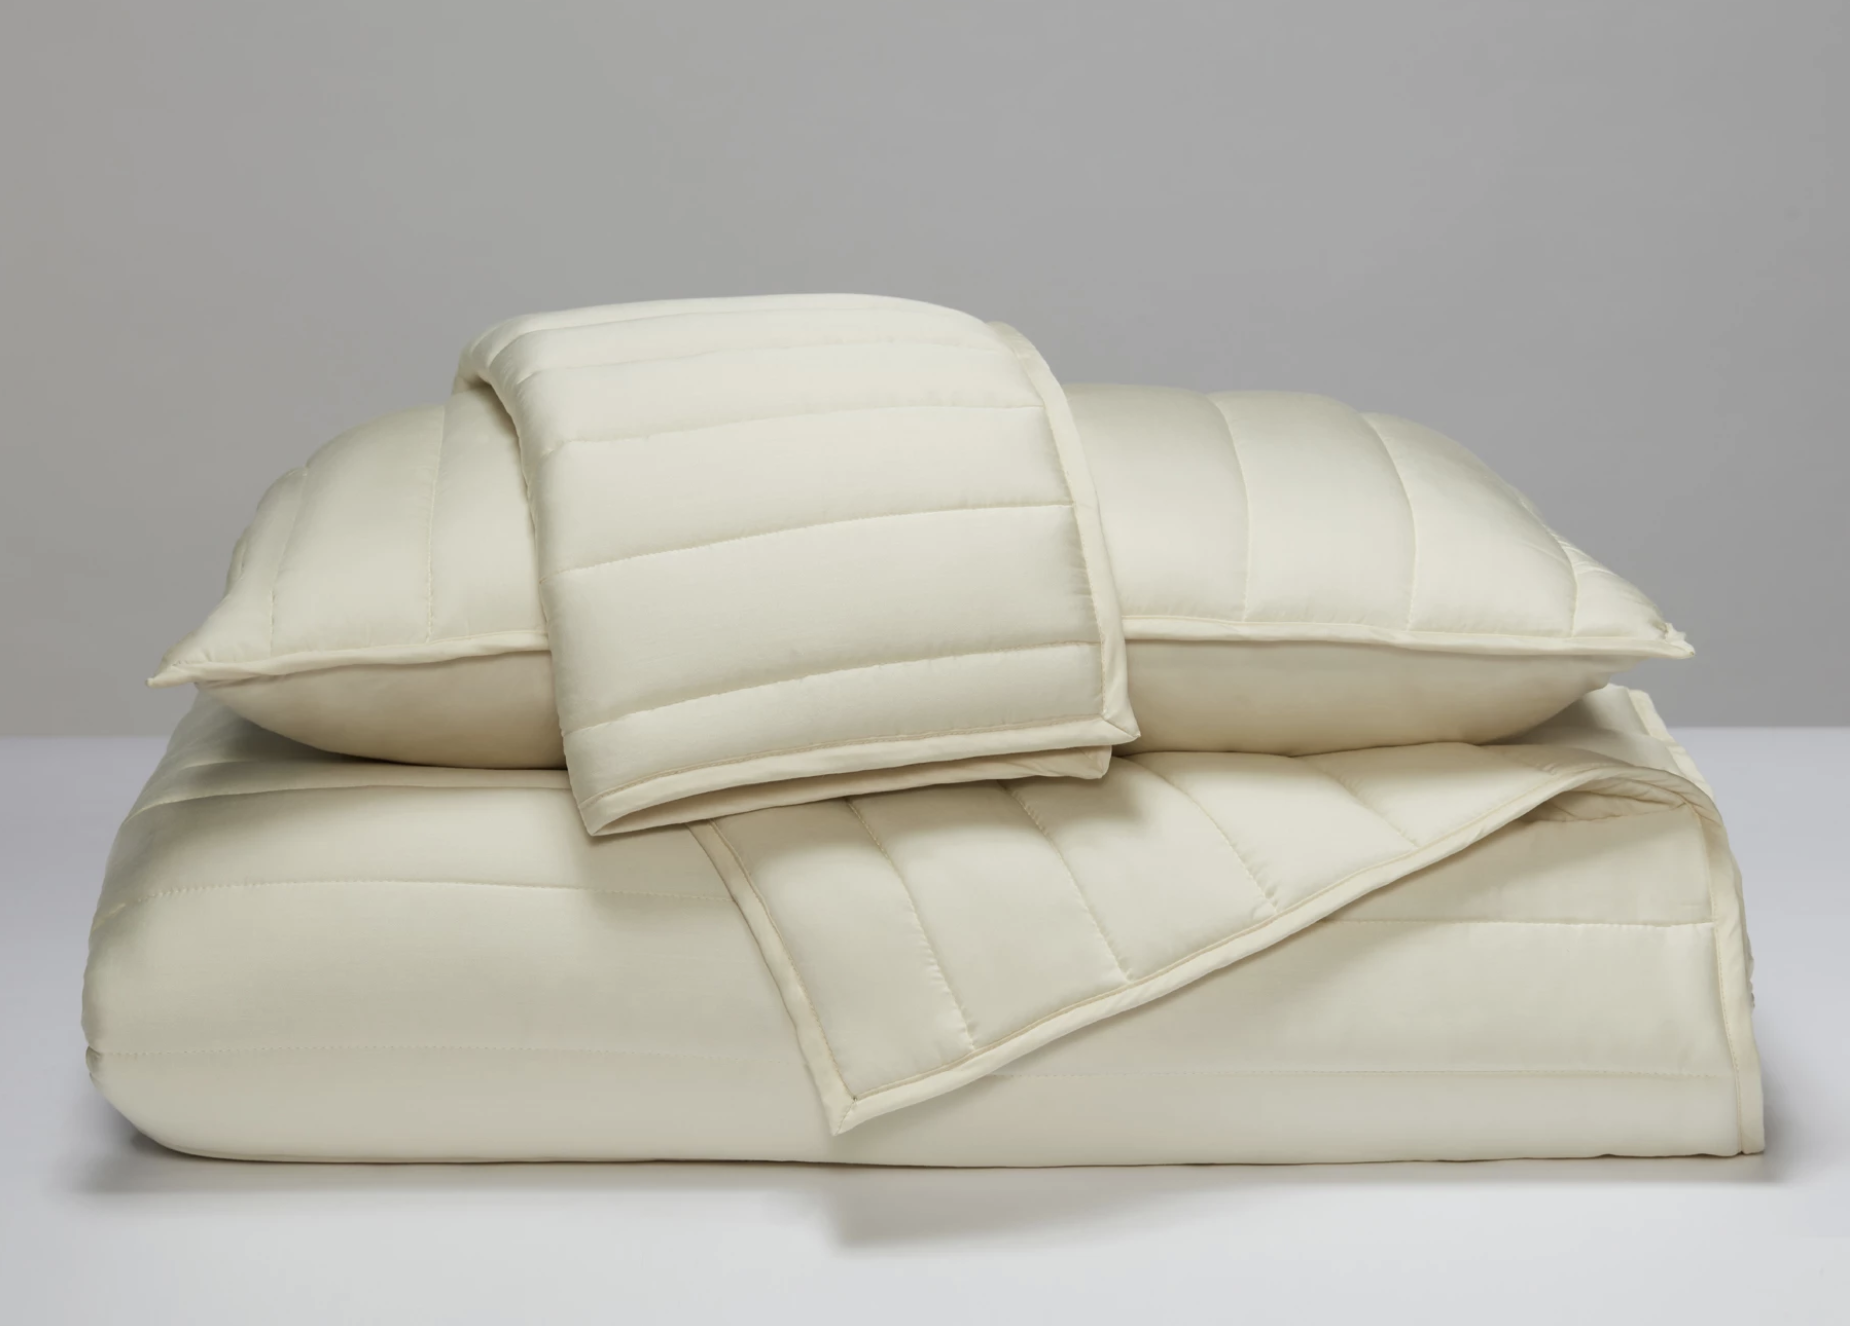 What Is a Pillow Sham & What Is It Used For?